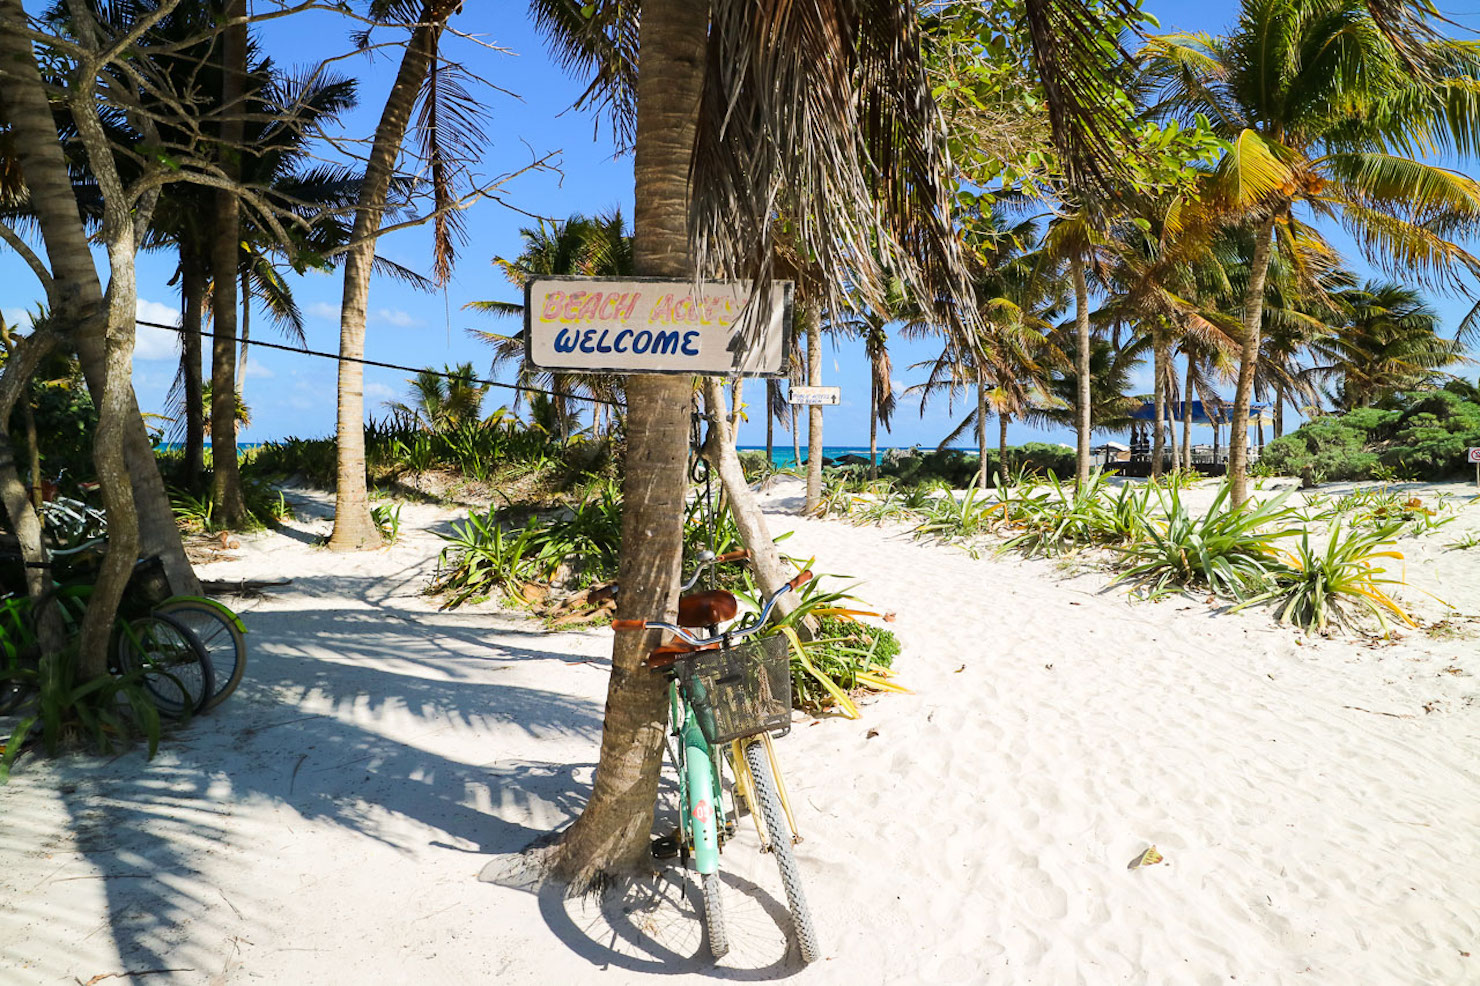 Beaches and Restaurants in Tulum